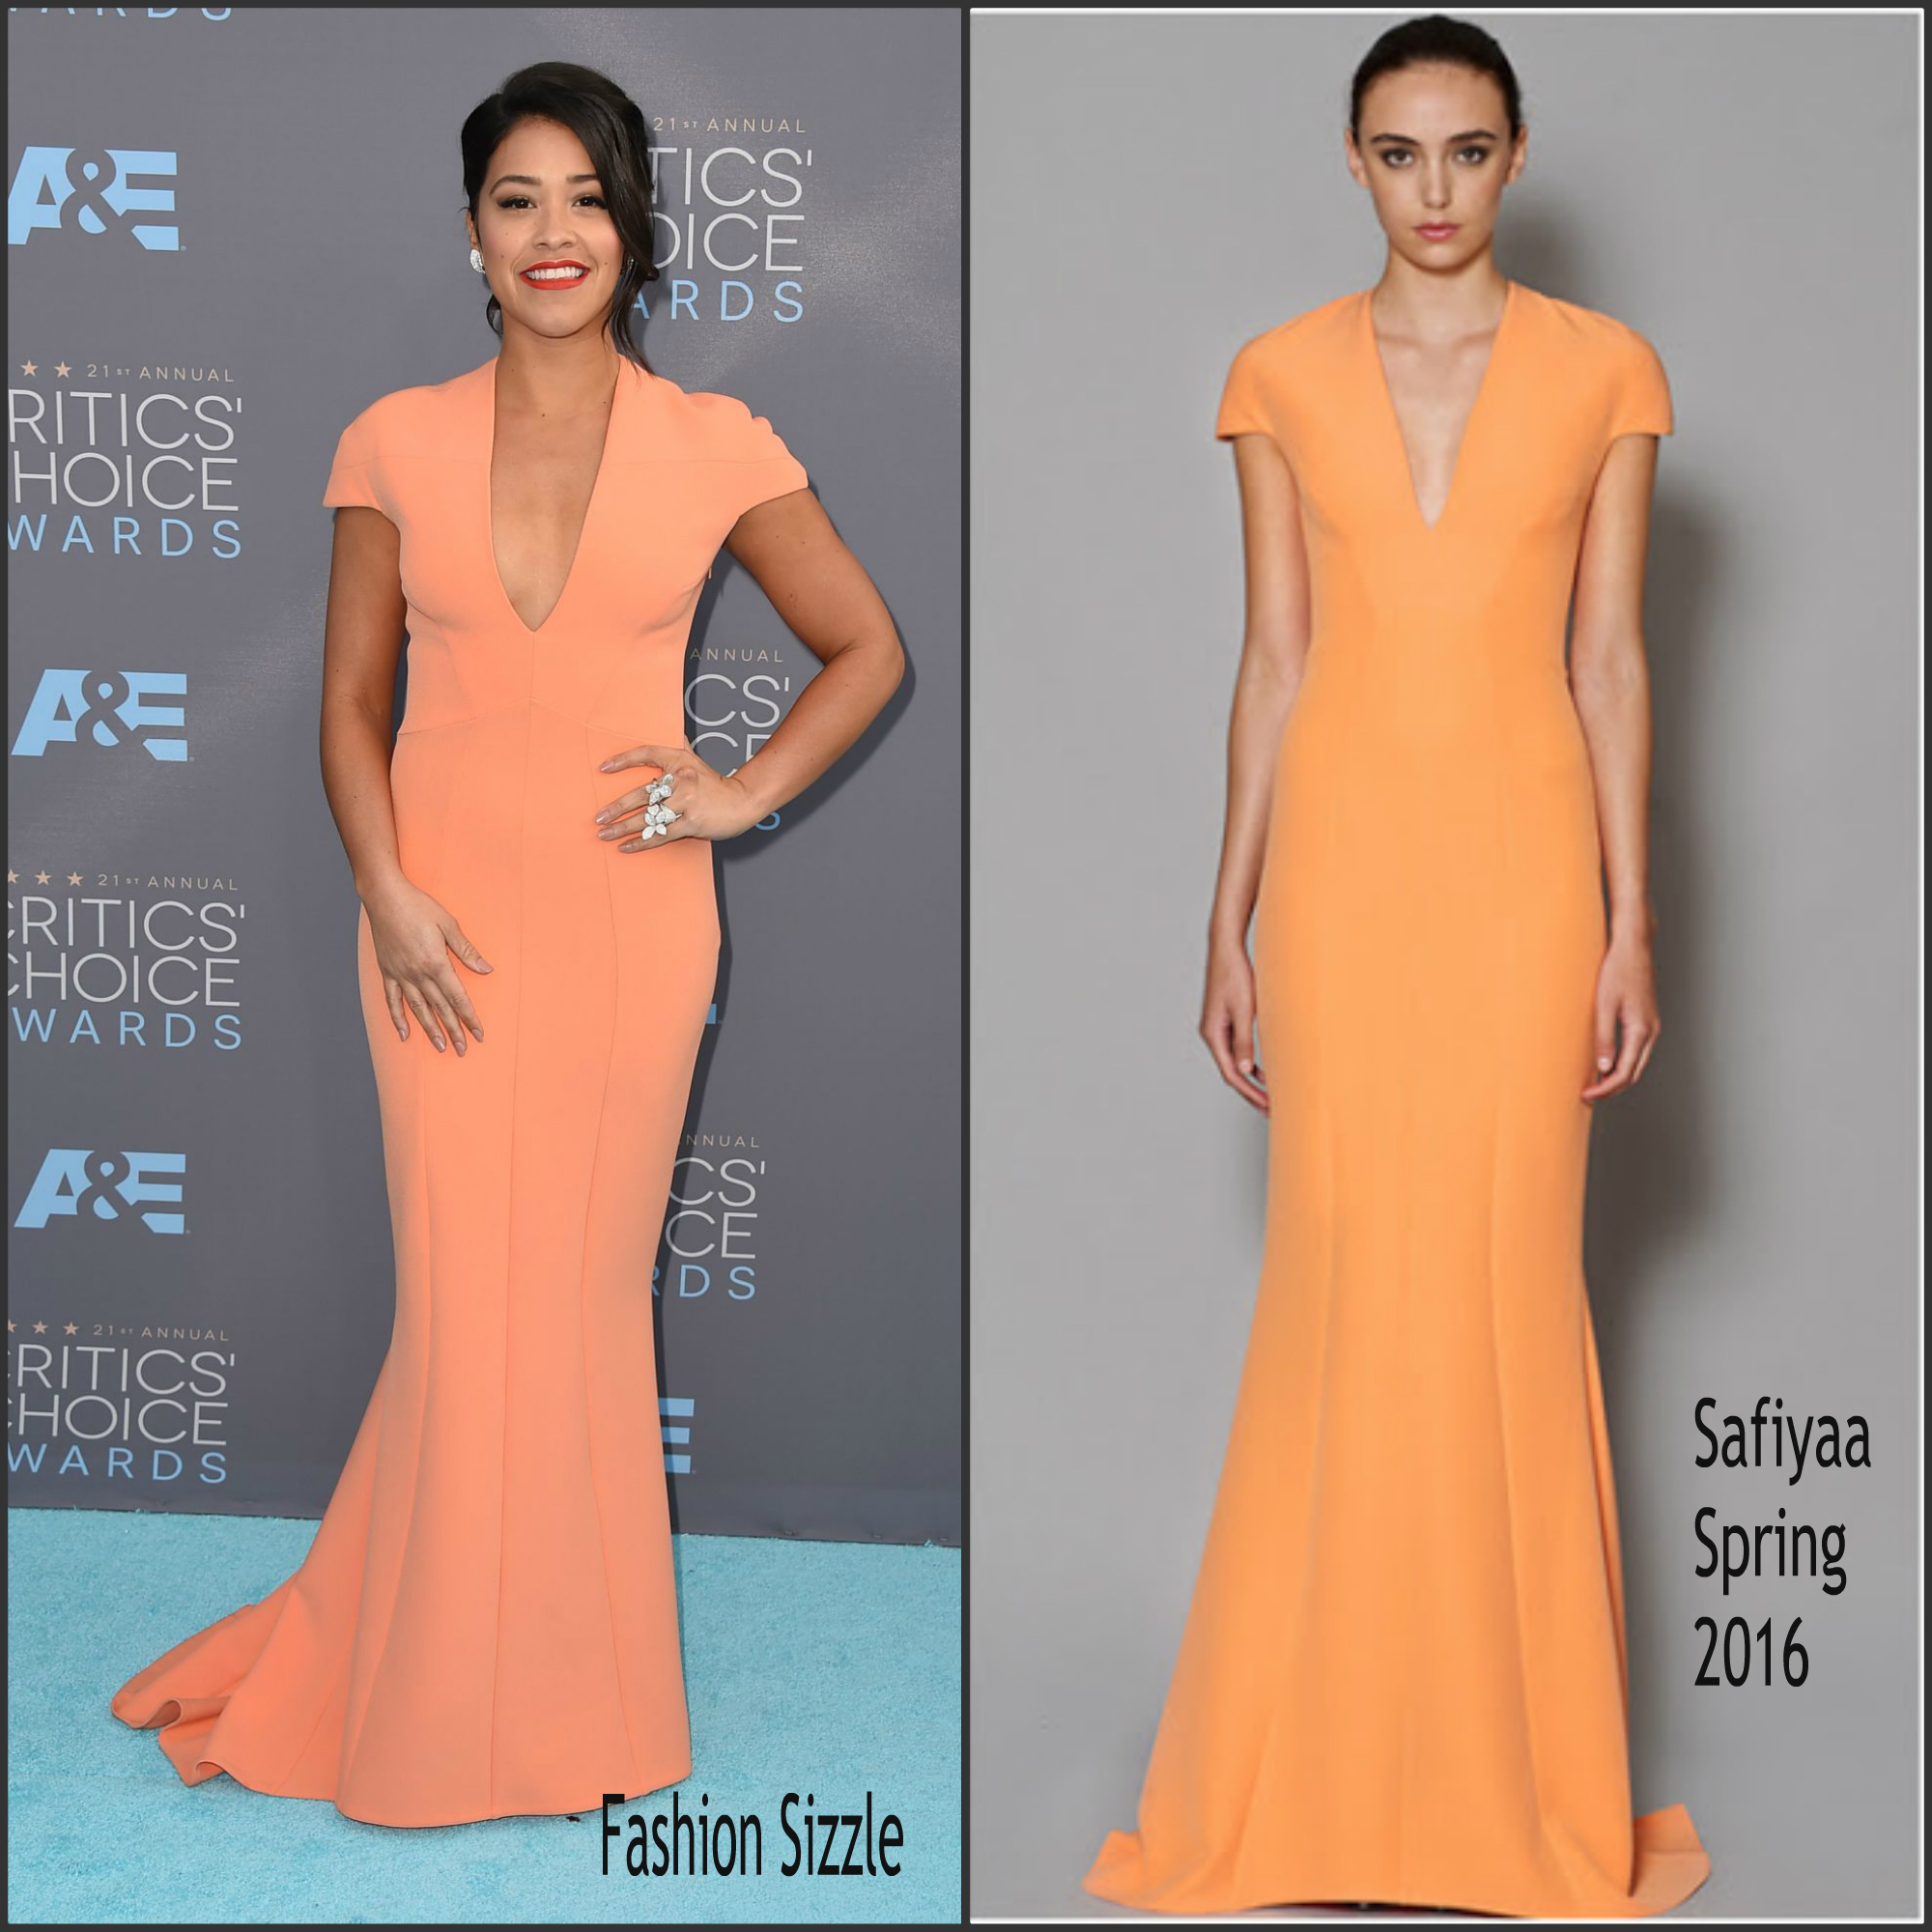 gina-rofriquez-in-safiyaa-critics-choice-awards